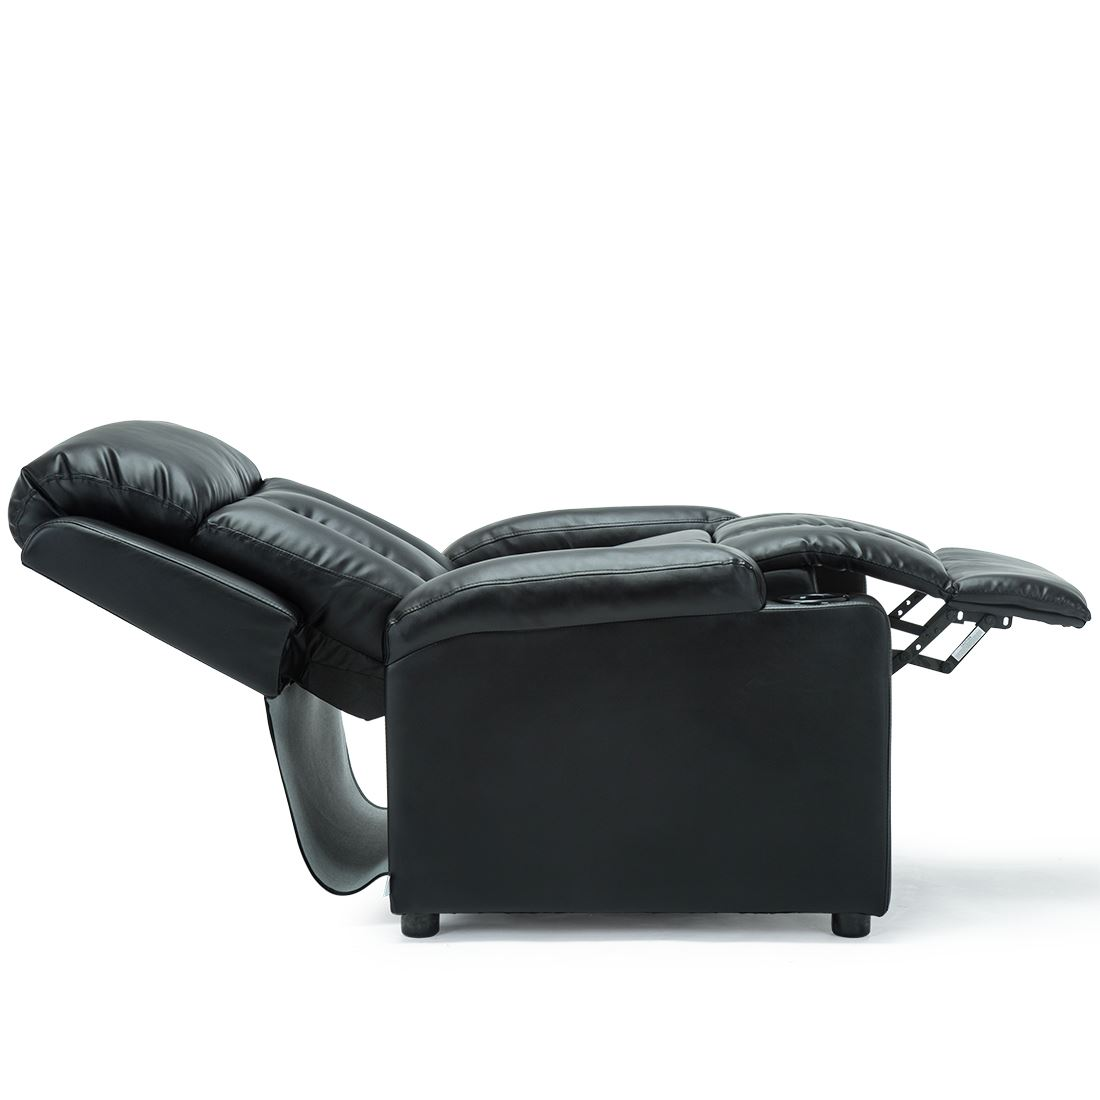 STUDIO-LEATHER-RECLINER-w-DRINK-HOLDERS-ARMCHAIR-SOFA-CHAIR-CINEMA-GAMING thumbnail 6